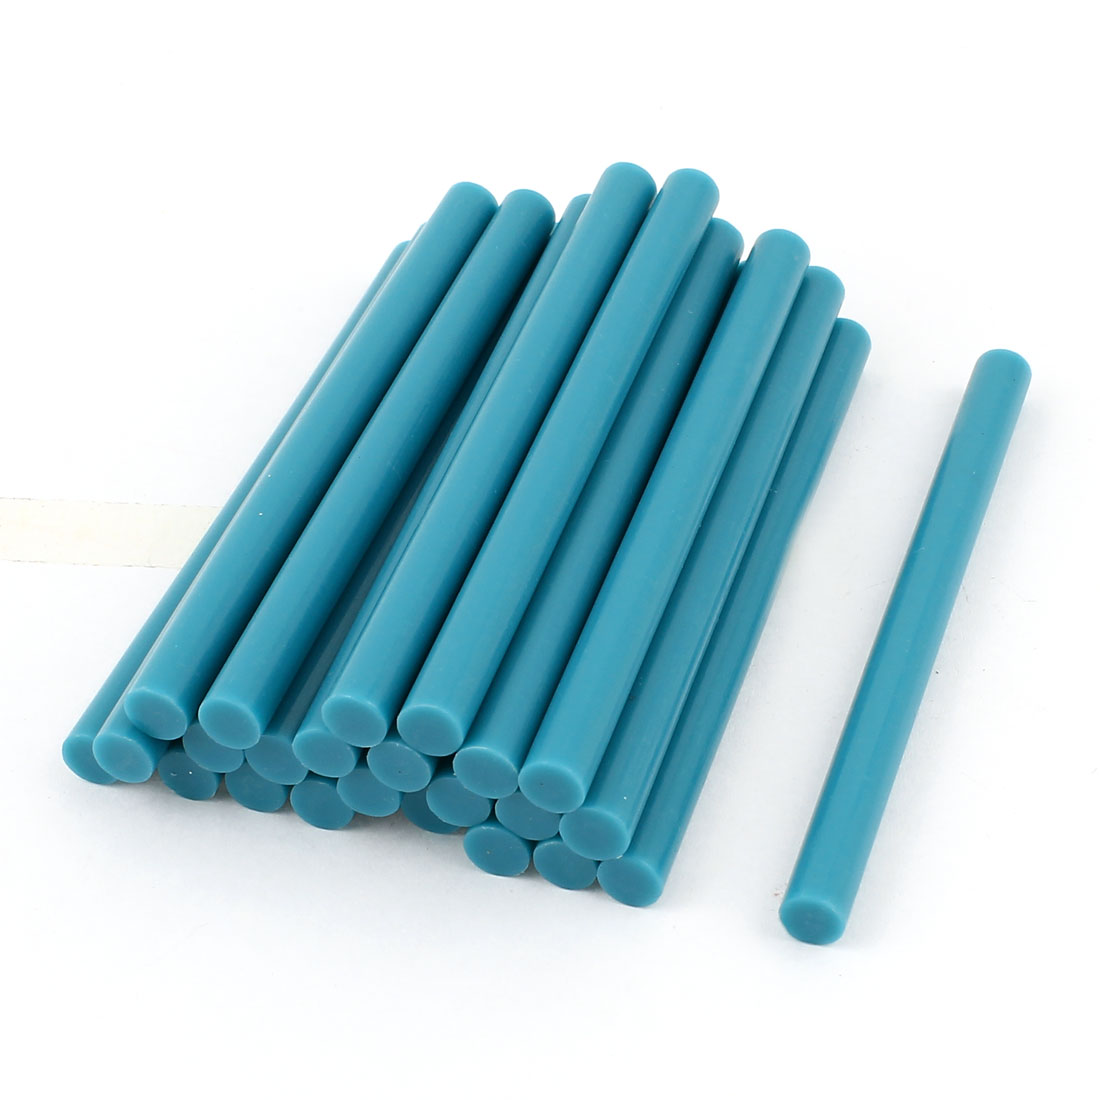 24 Pcs Teal Blue Hot Melt Glue Gun Adhesive Sticks 7mm x 100mm